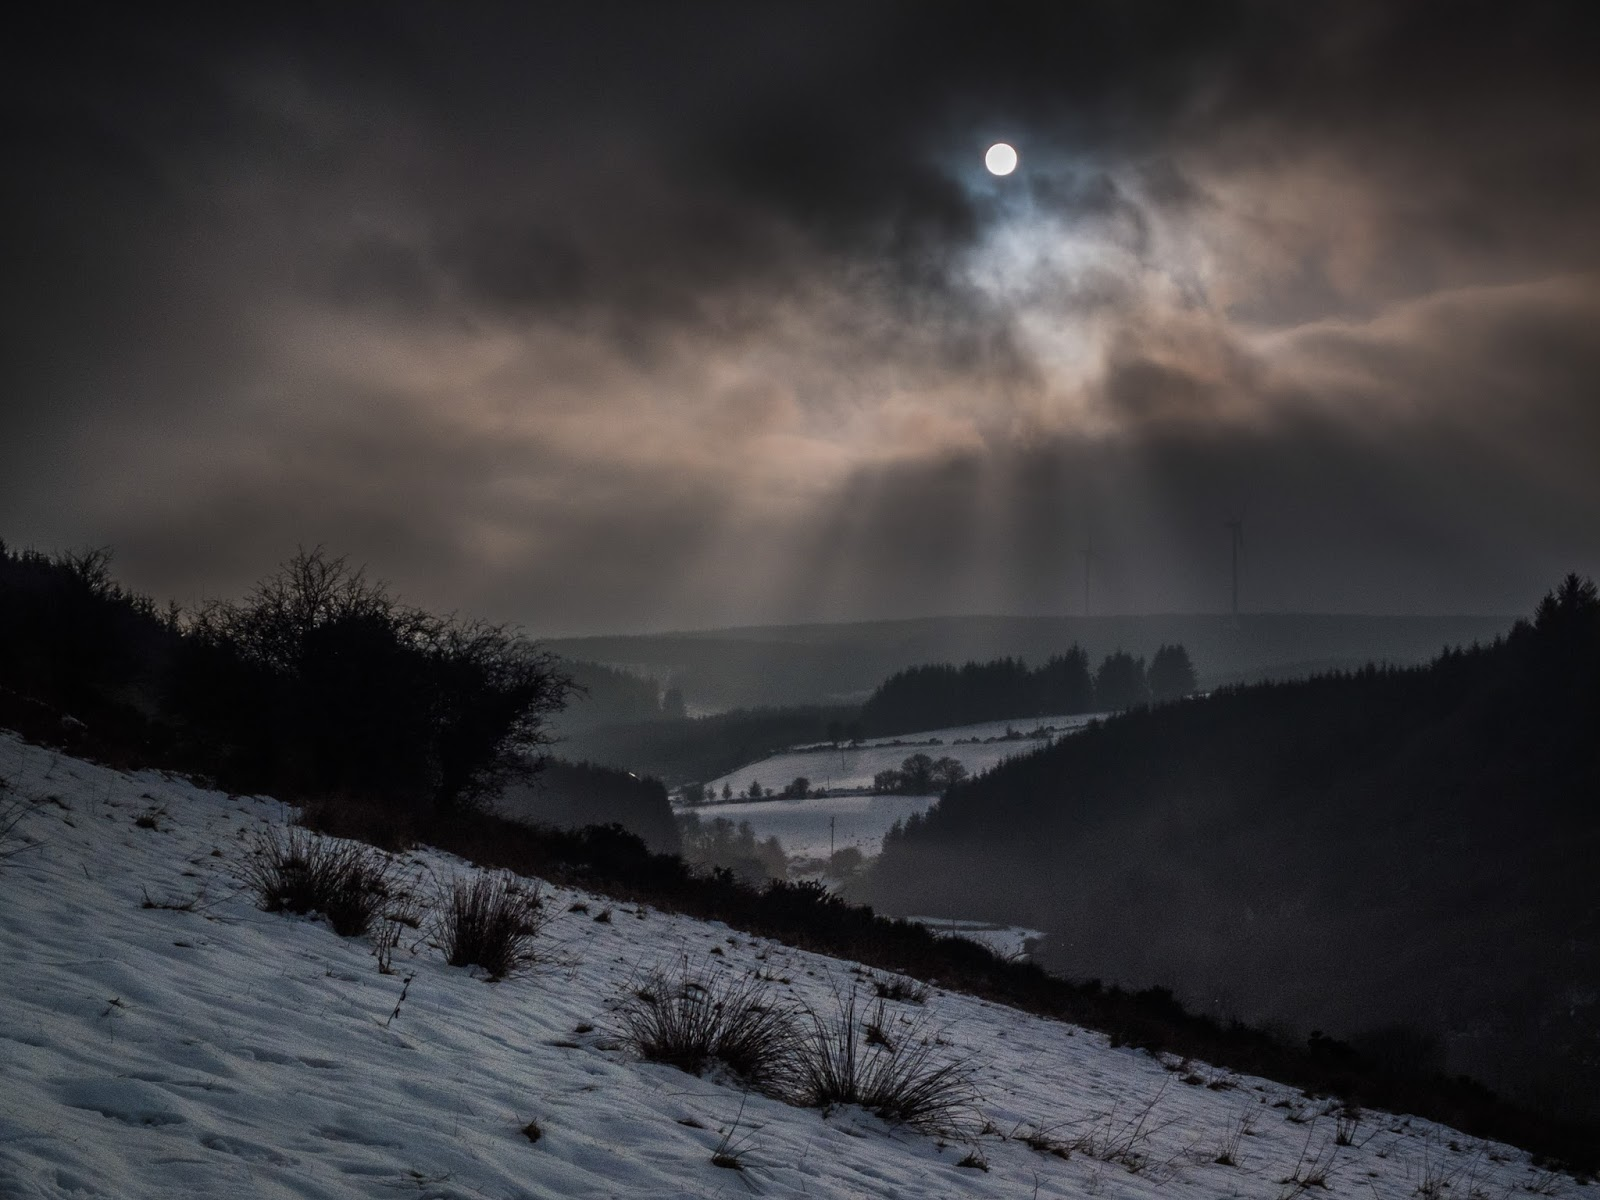 Irish mountain landscape in the snow with dramatic skies and crepuscular sun rays.